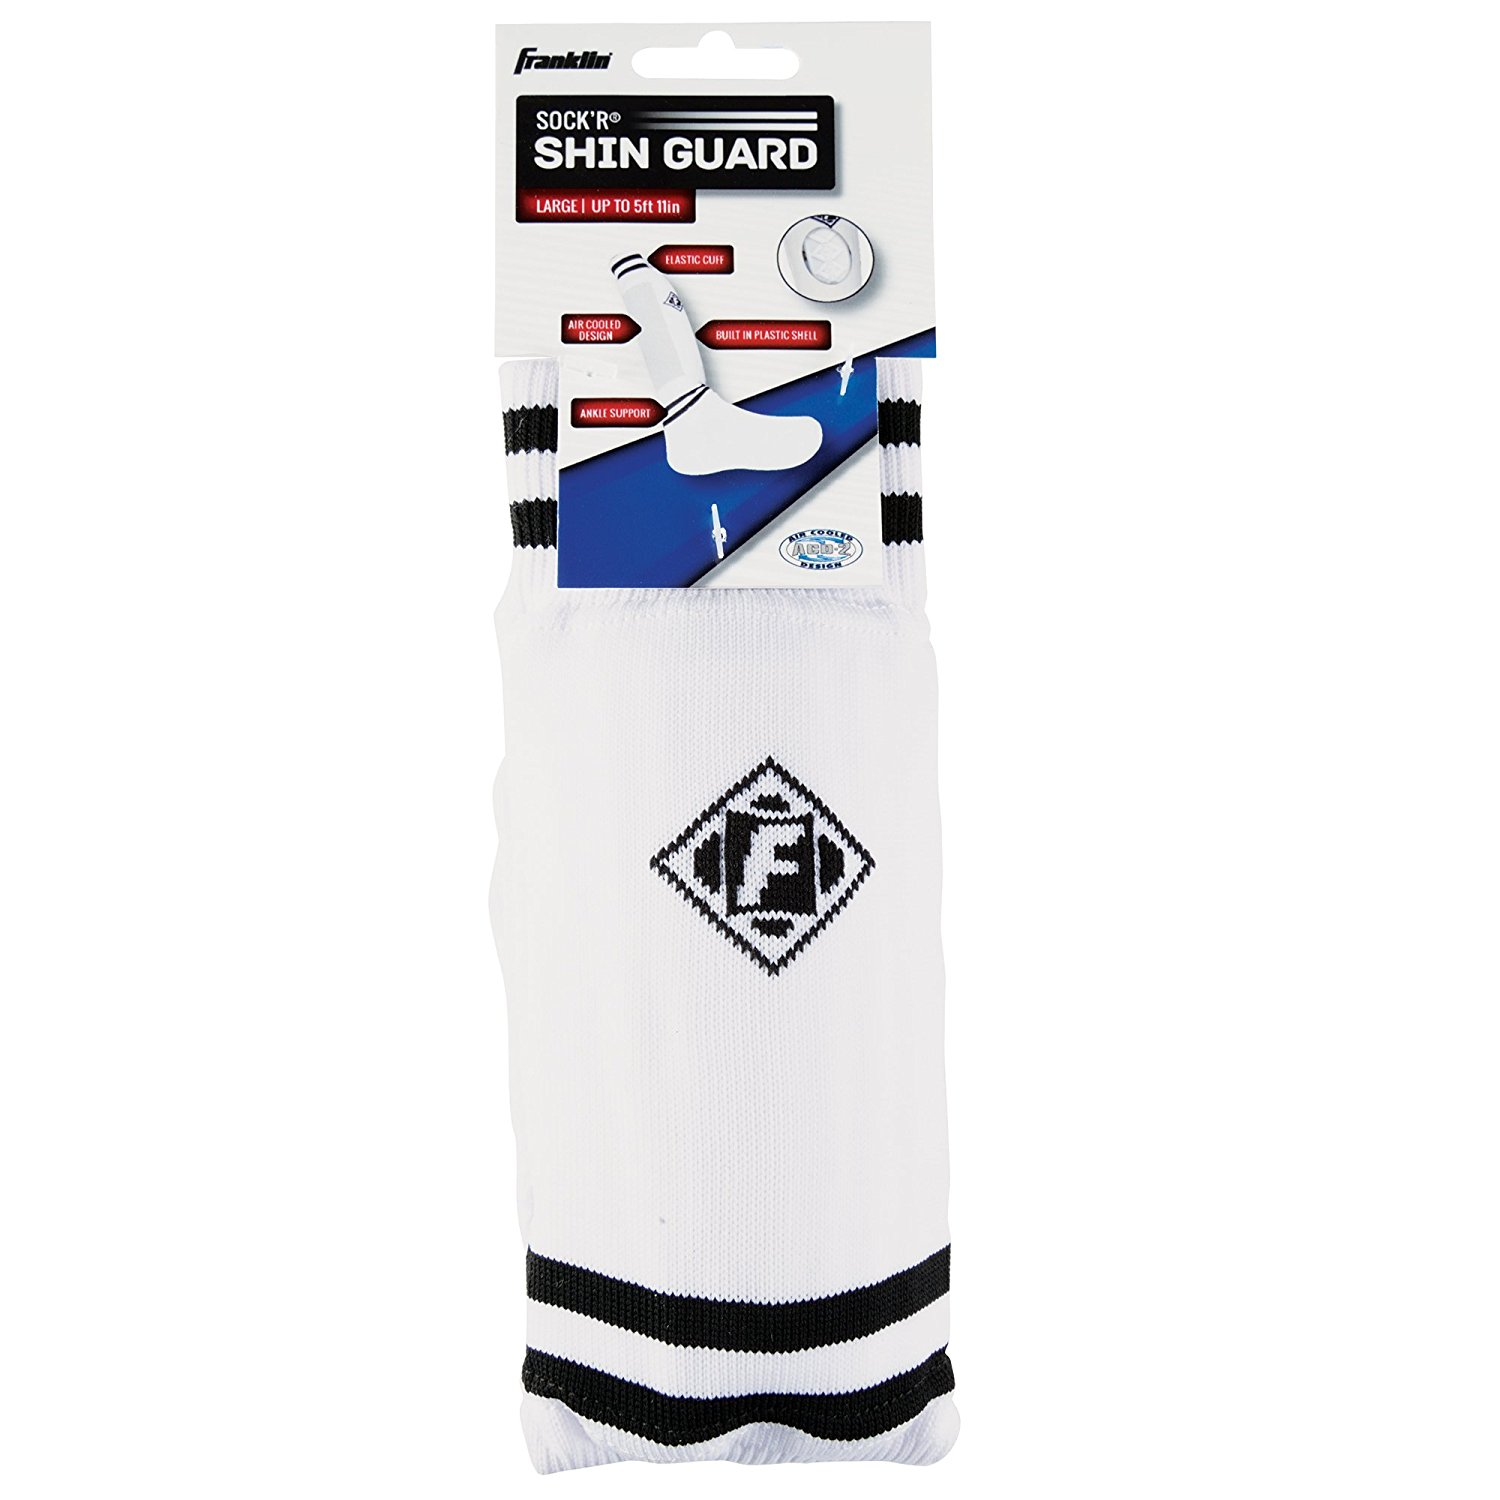 """NEW Franklin Sock/'R Shinguards Built In Plastic Shell Small Up To 4/'7/"""" Black"""